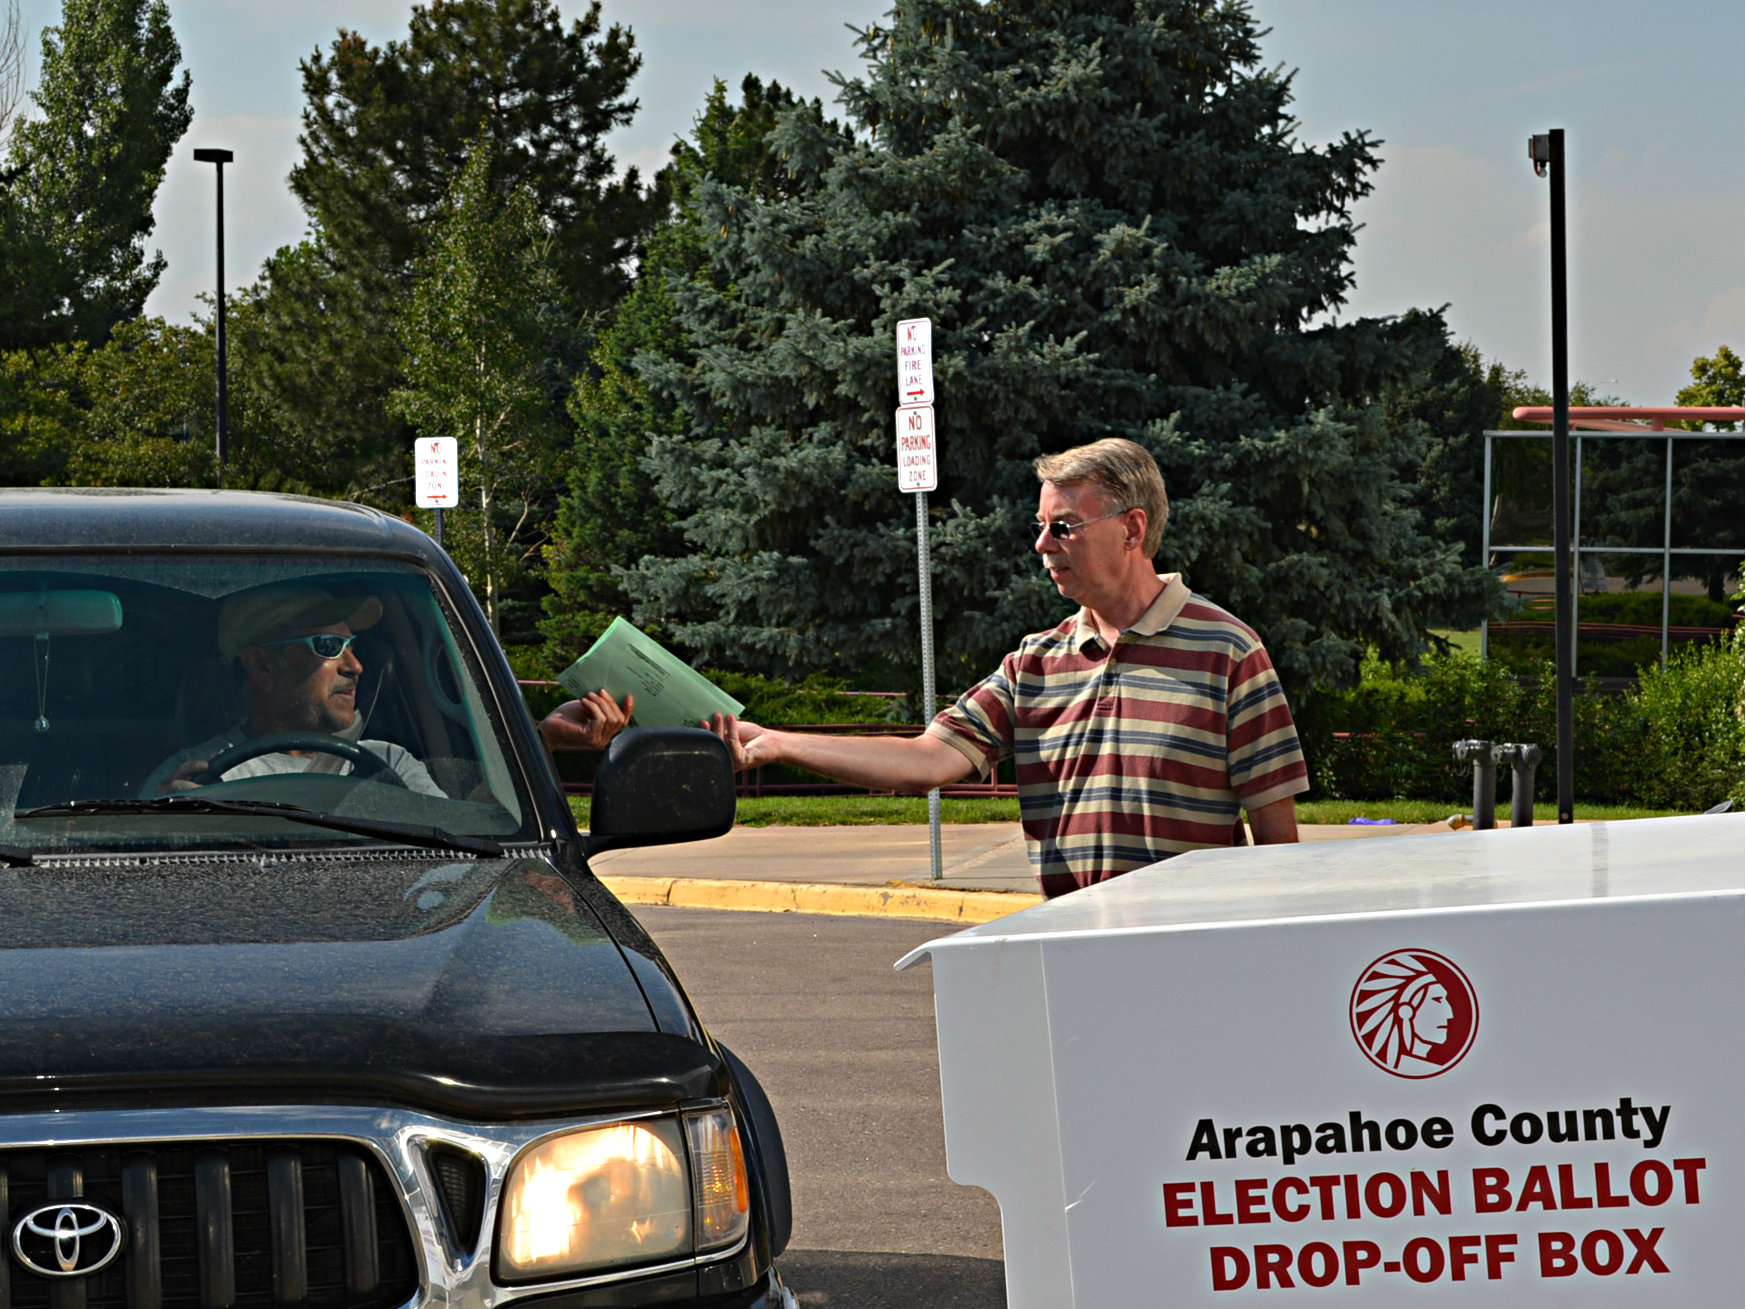 Photo: Ballot drop off in Arapahoe County